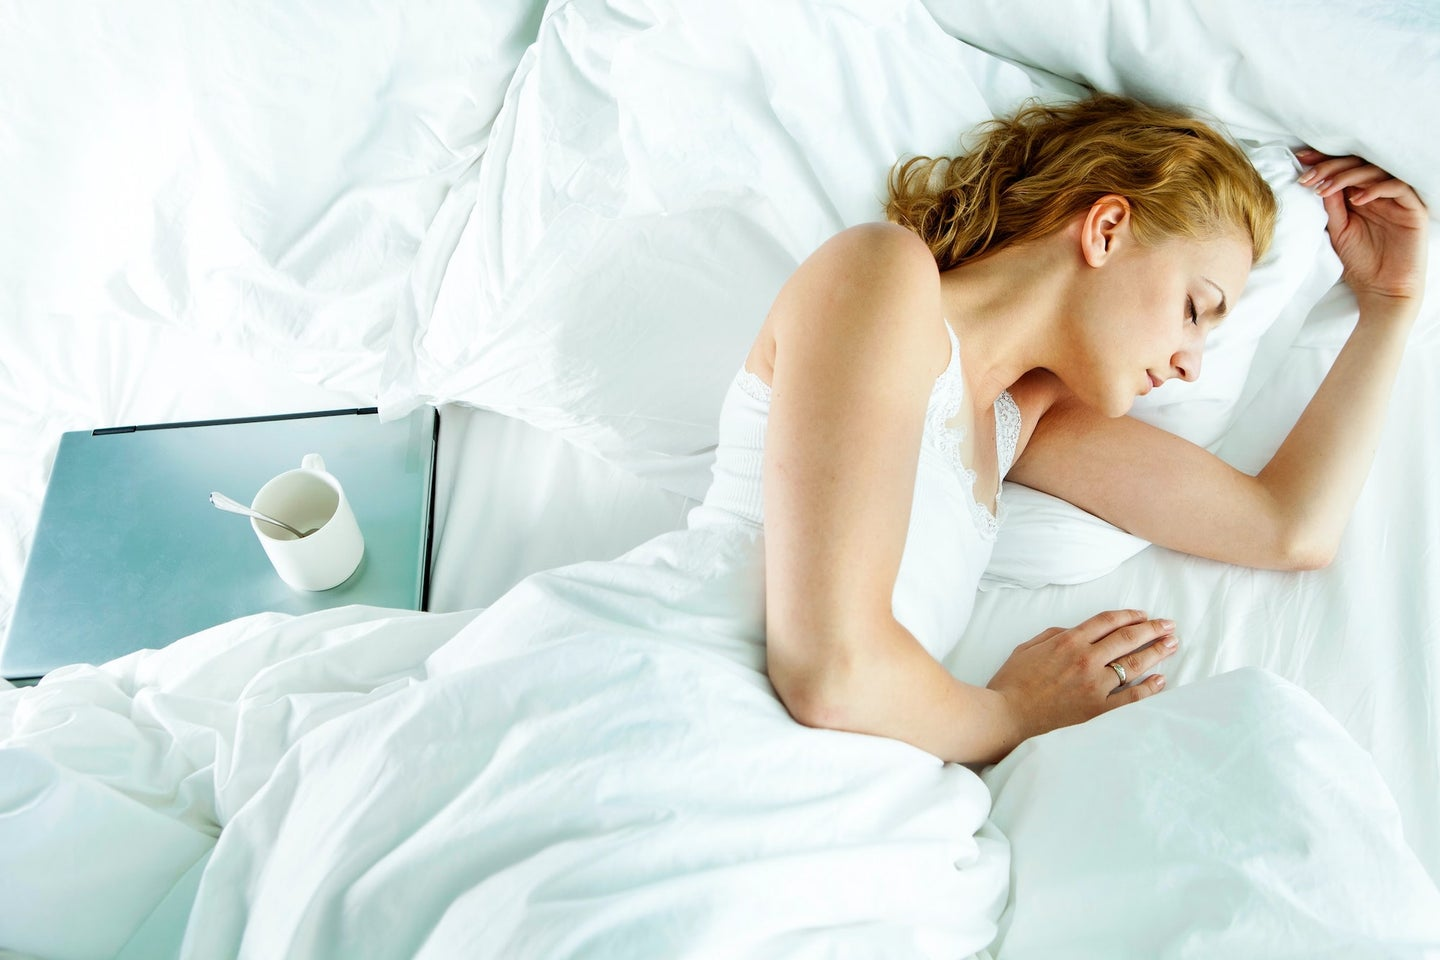 Woman sleeping in bed next to laptop and empty mug